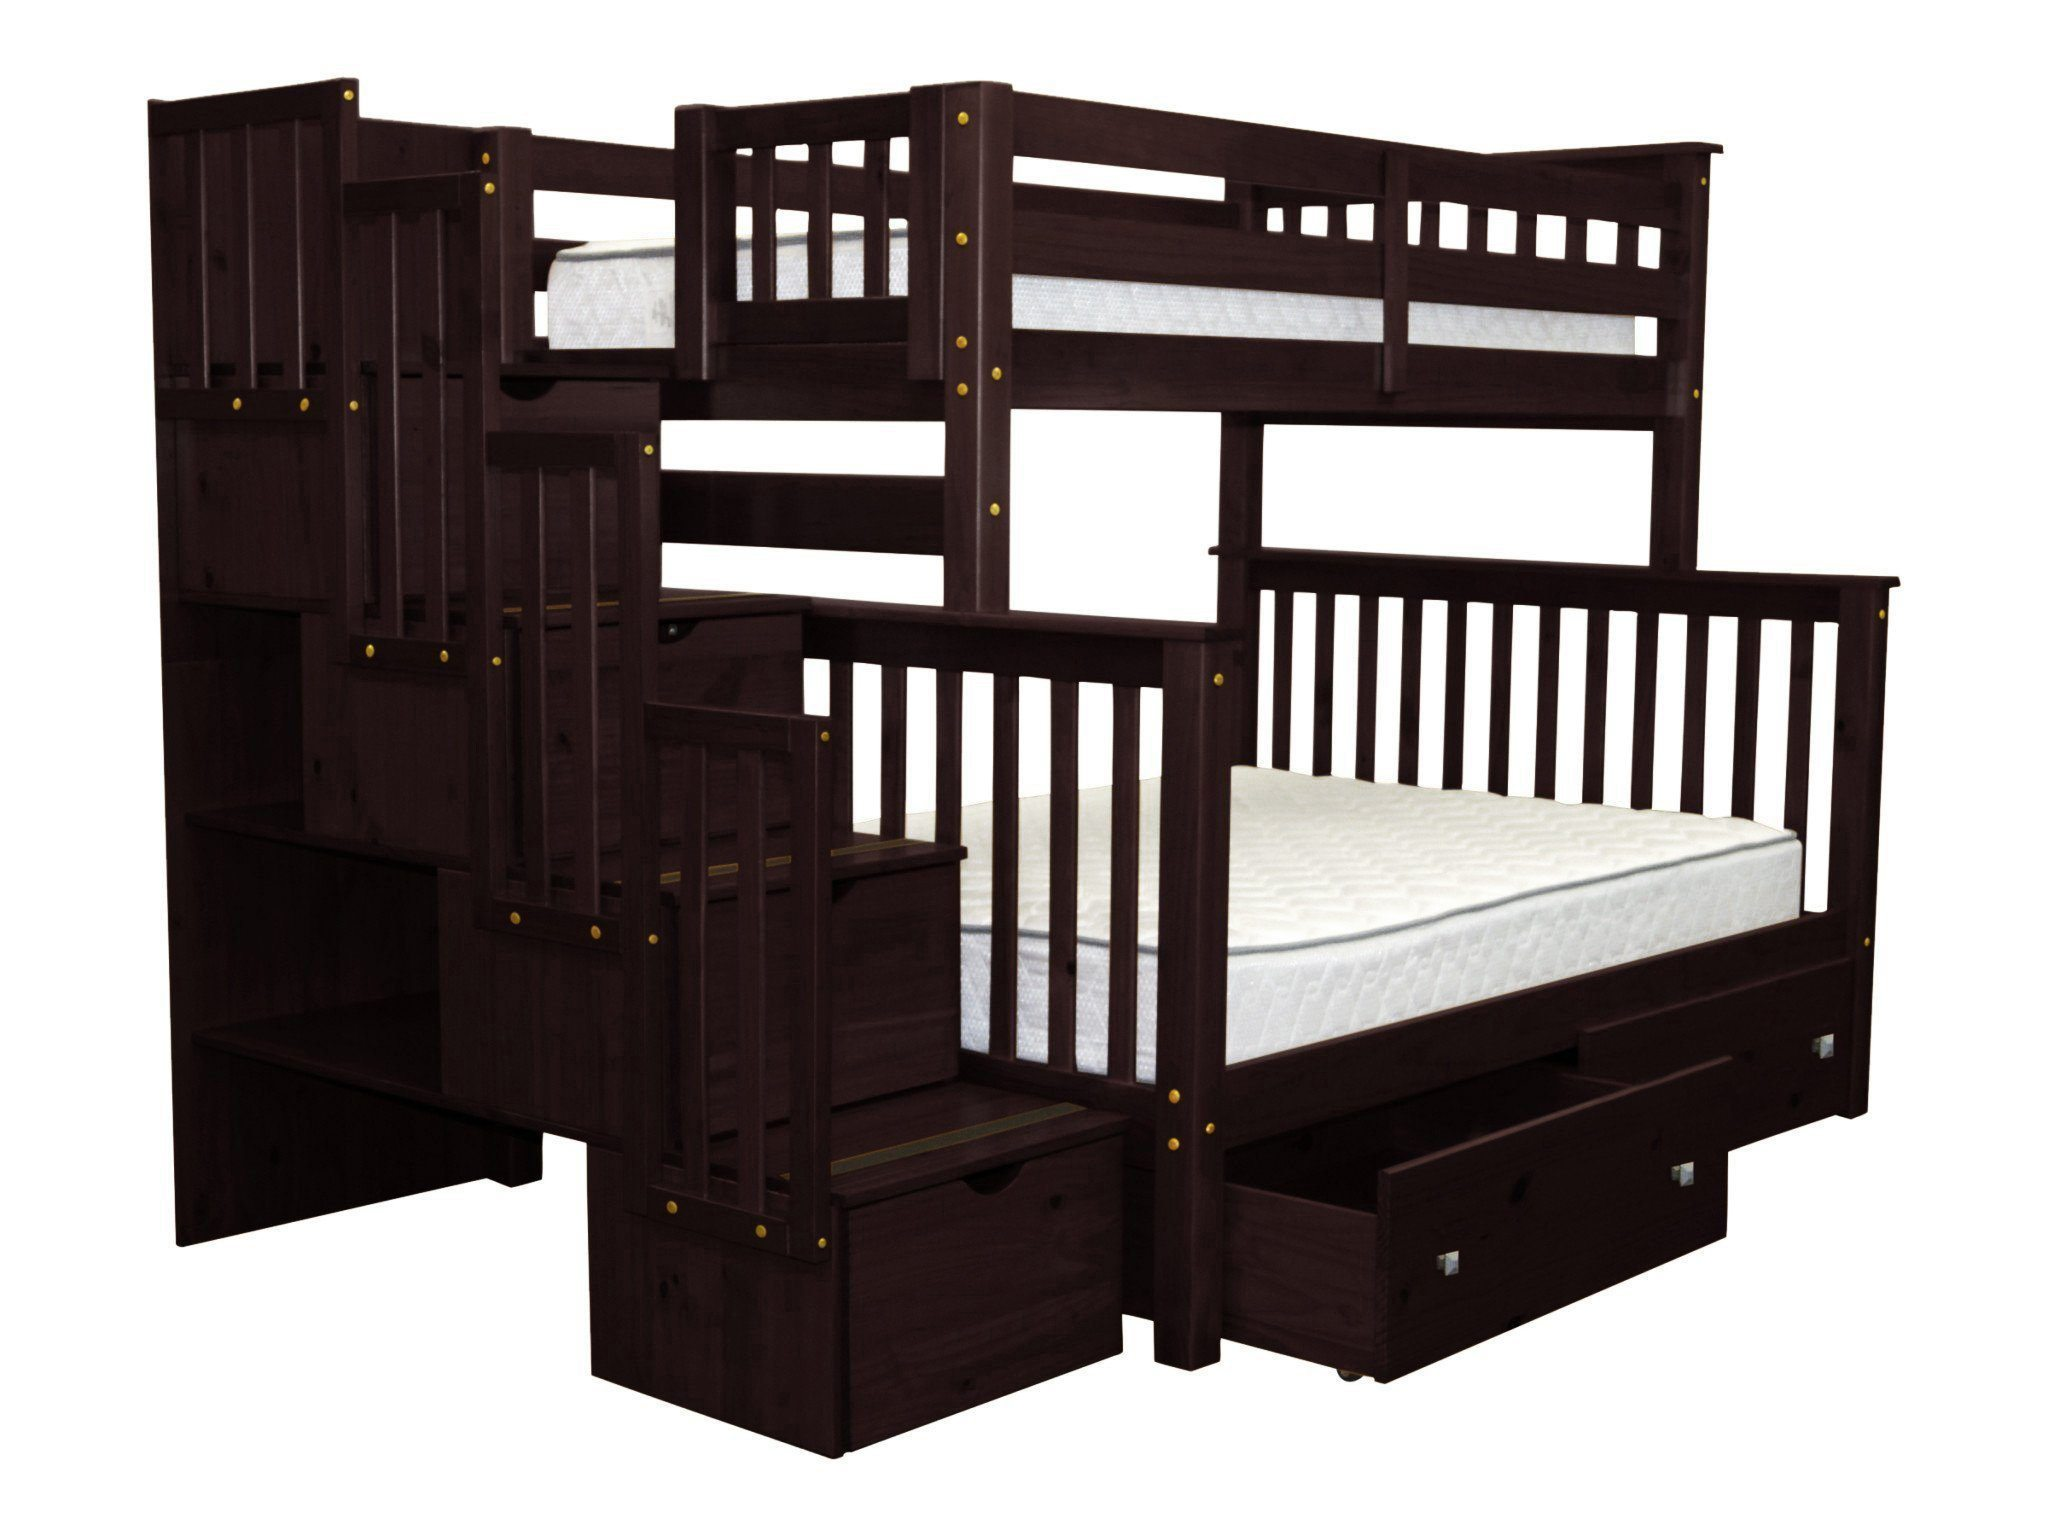 Beau Bedz King Stairway Bunk Beds Twin Over Full With 4 Drawers In The Steps And  2 Under Bed Drawers Cappuccino